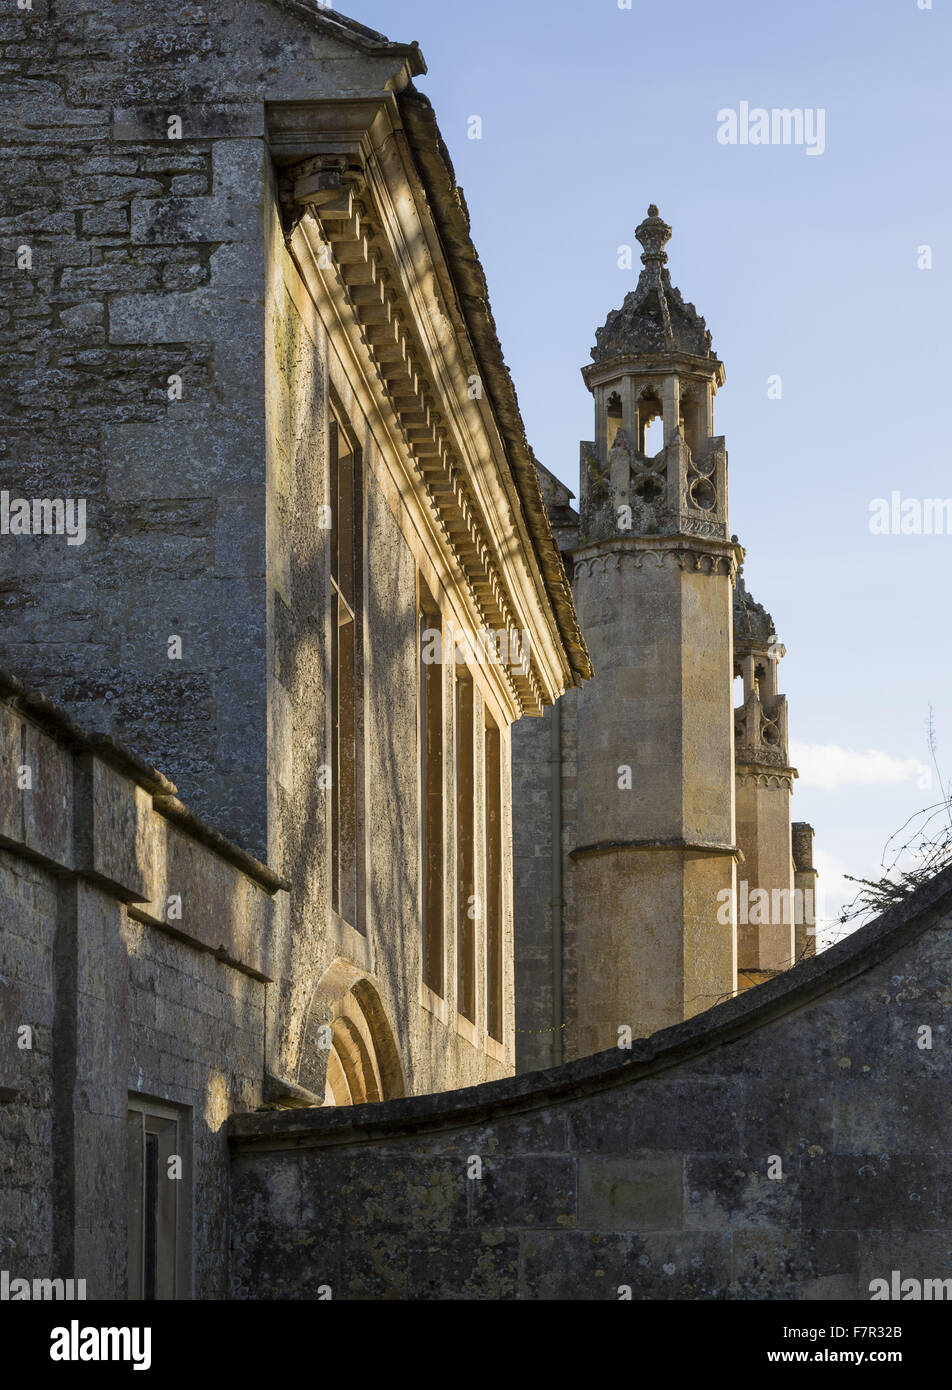 An oblique view of the front of Lacock Abbey, Wiltshire. - Stock Image